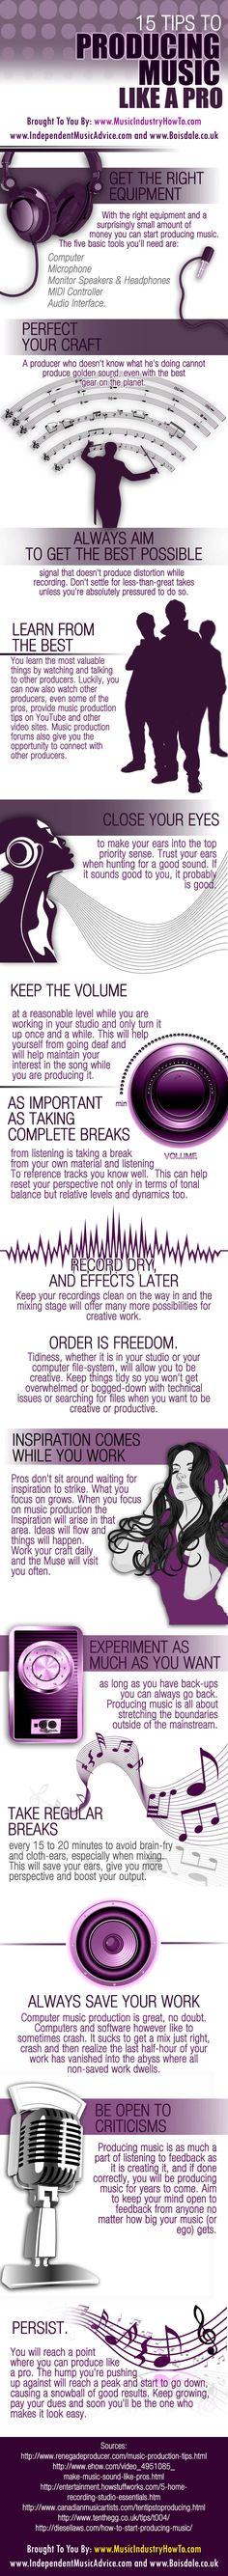 15 Tips For Becoming A Better Music Producer. Infographic, another bonus 5 tips also on the page.